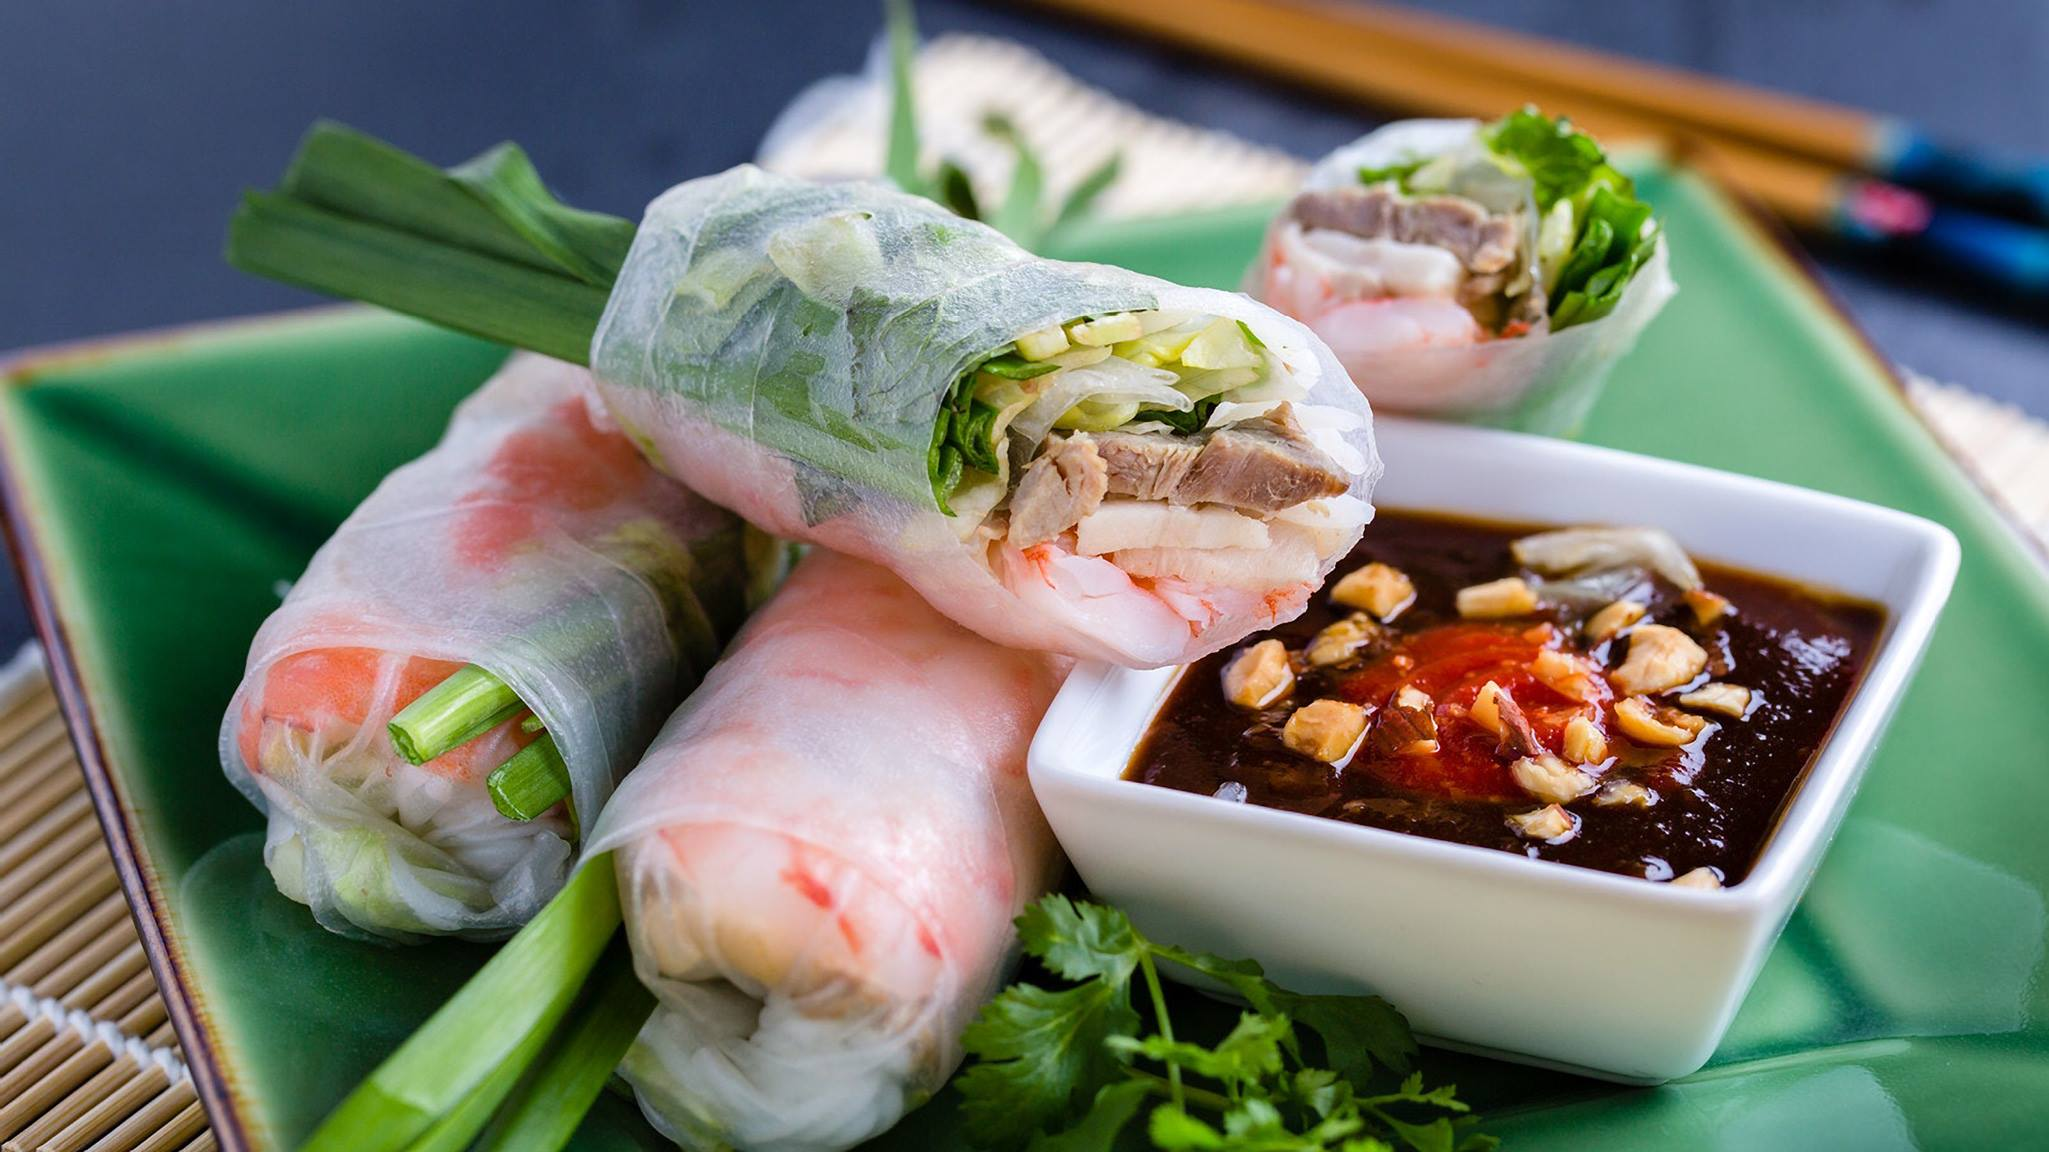 Spring Roll - 2 for $3.99